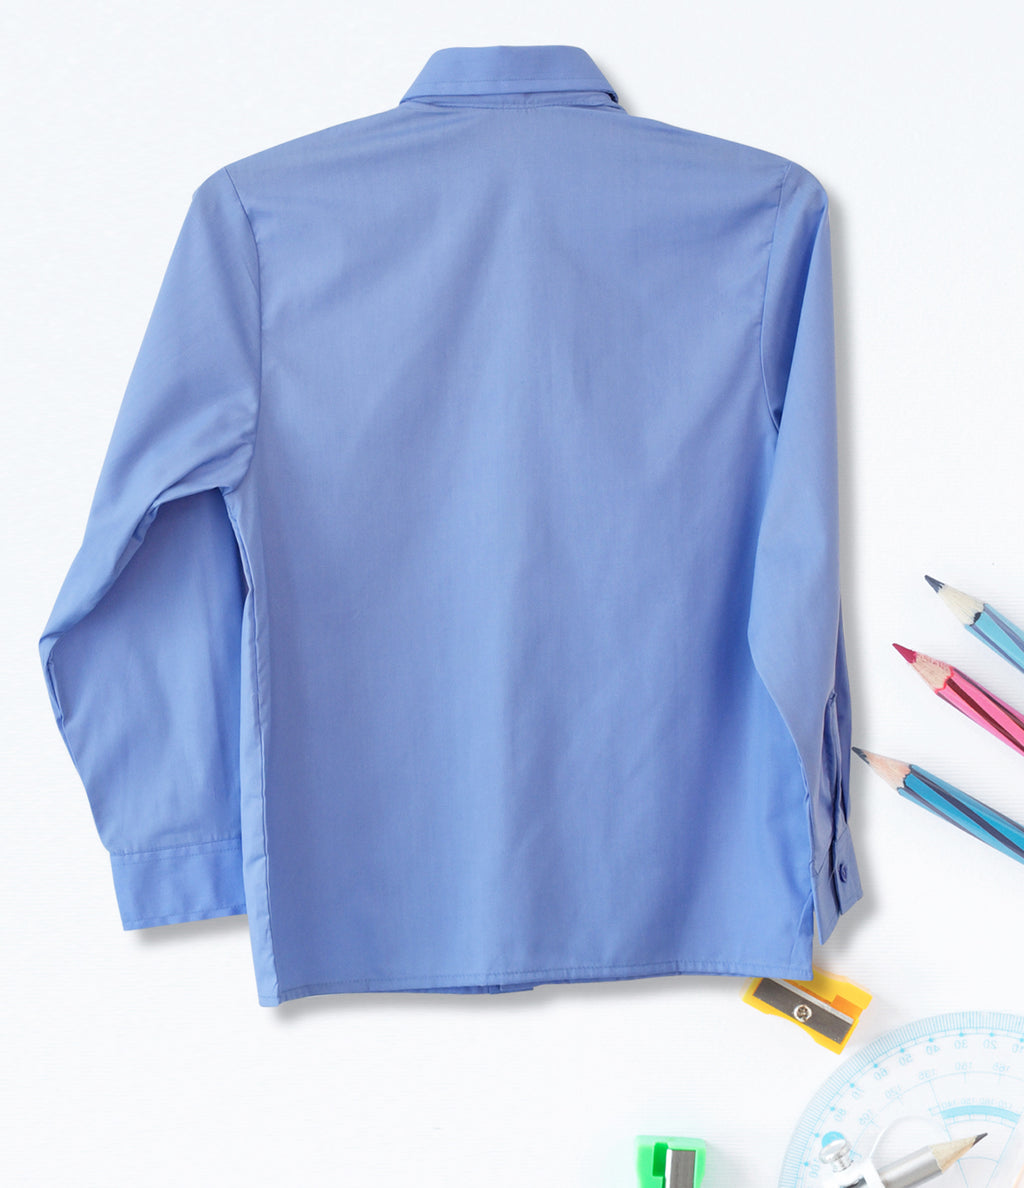 Boys Long Sleeve Shirt - Blue